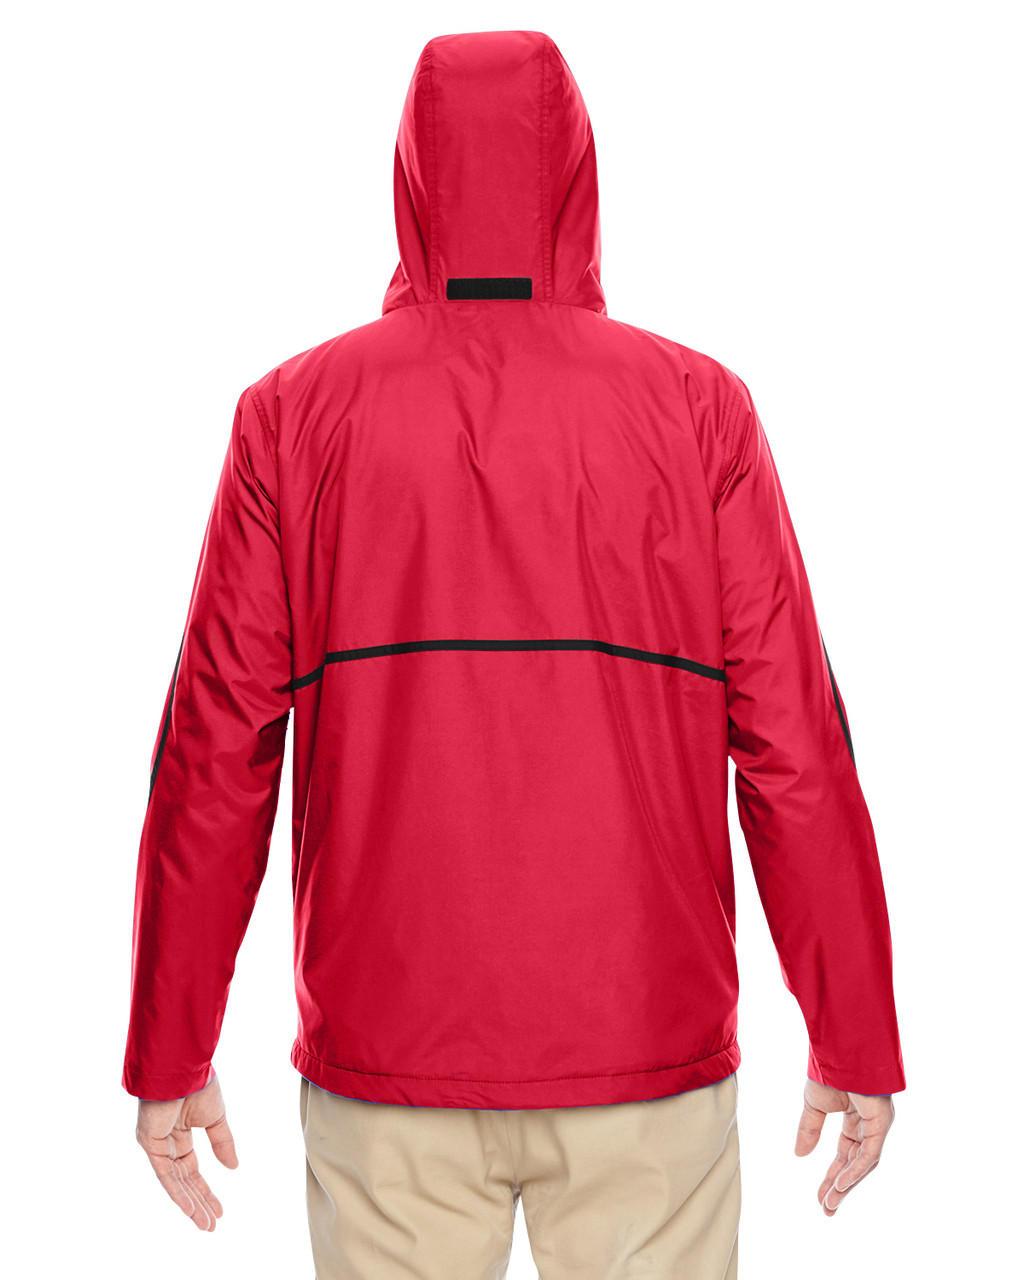 Sport Red - Back, TT72 Team 365 Conquest Jacket with Fleece Lining | BlankClothing.ca